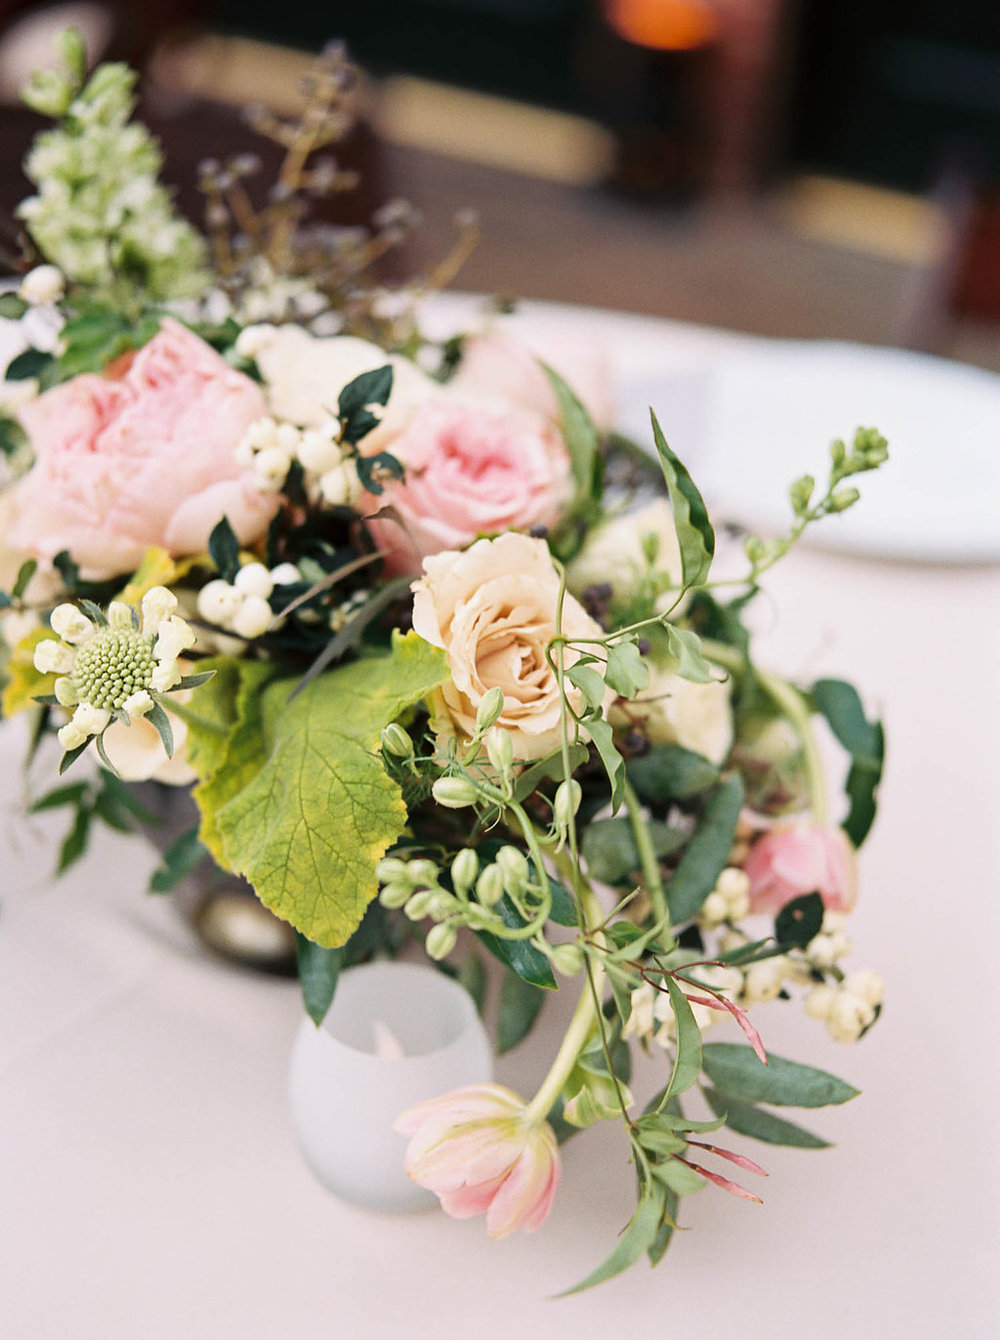 Cheekwood Botanical Garden Wedding // Blush and greenery centerpiece